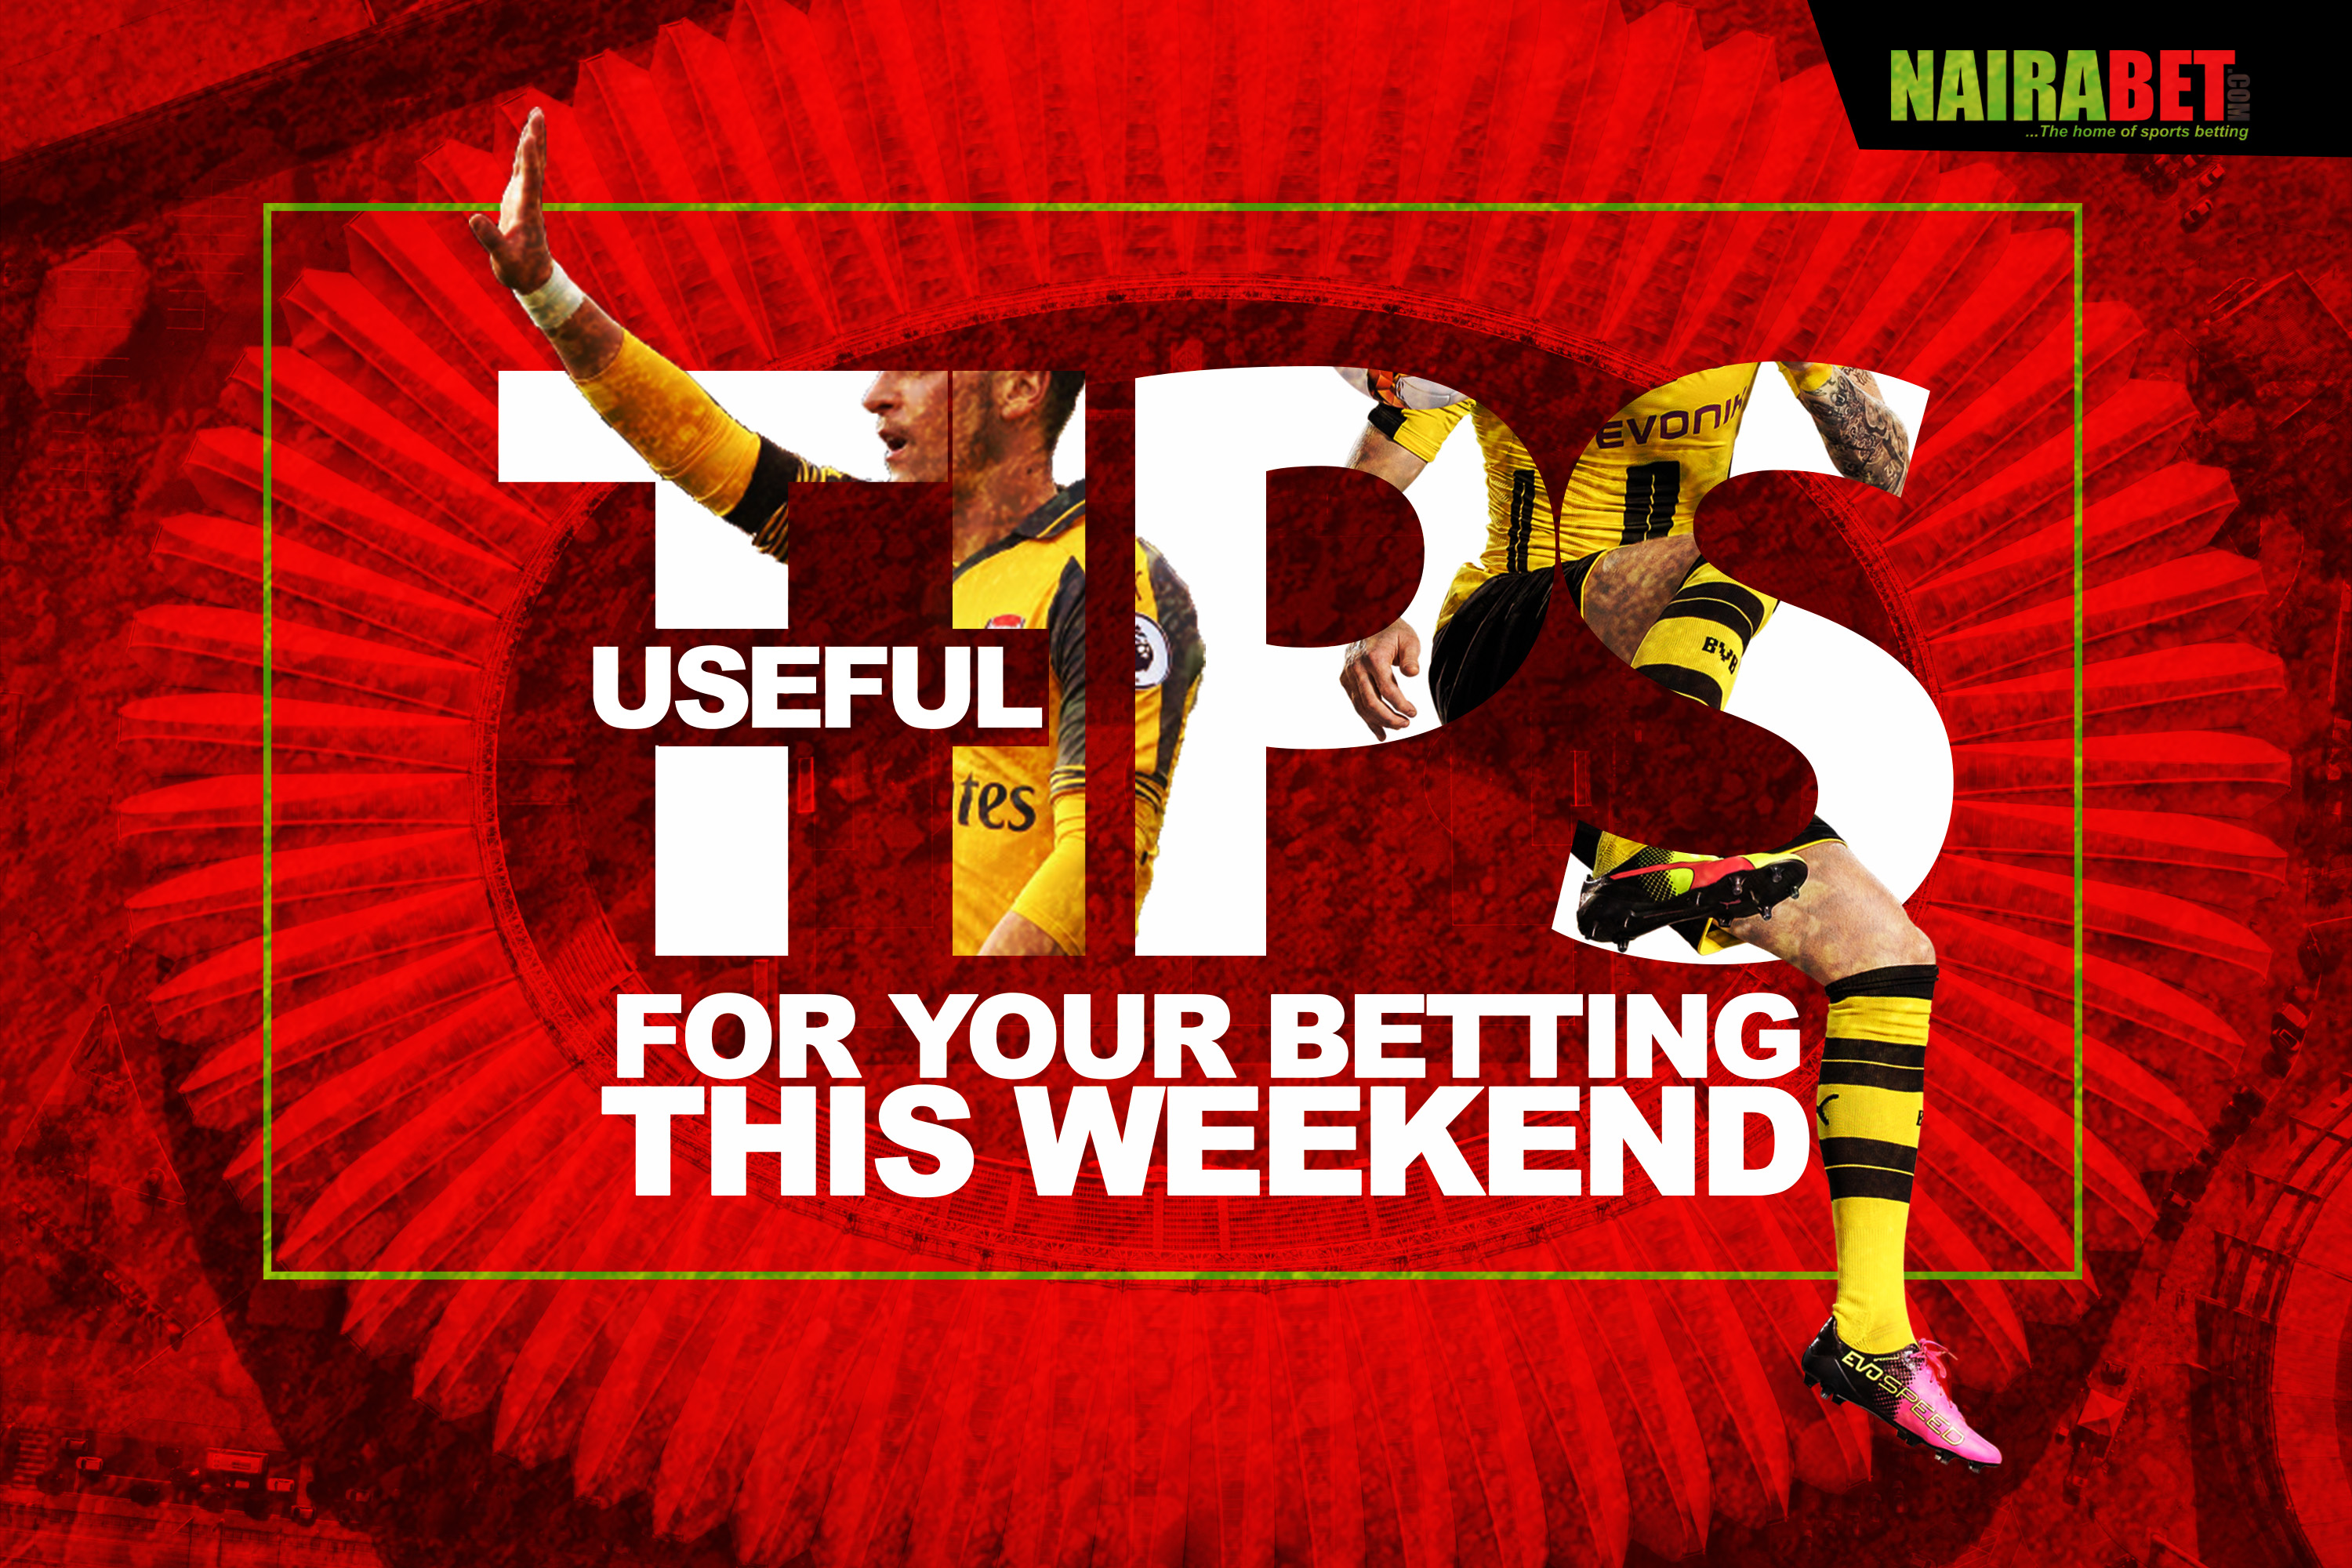 tips for betting this weekend